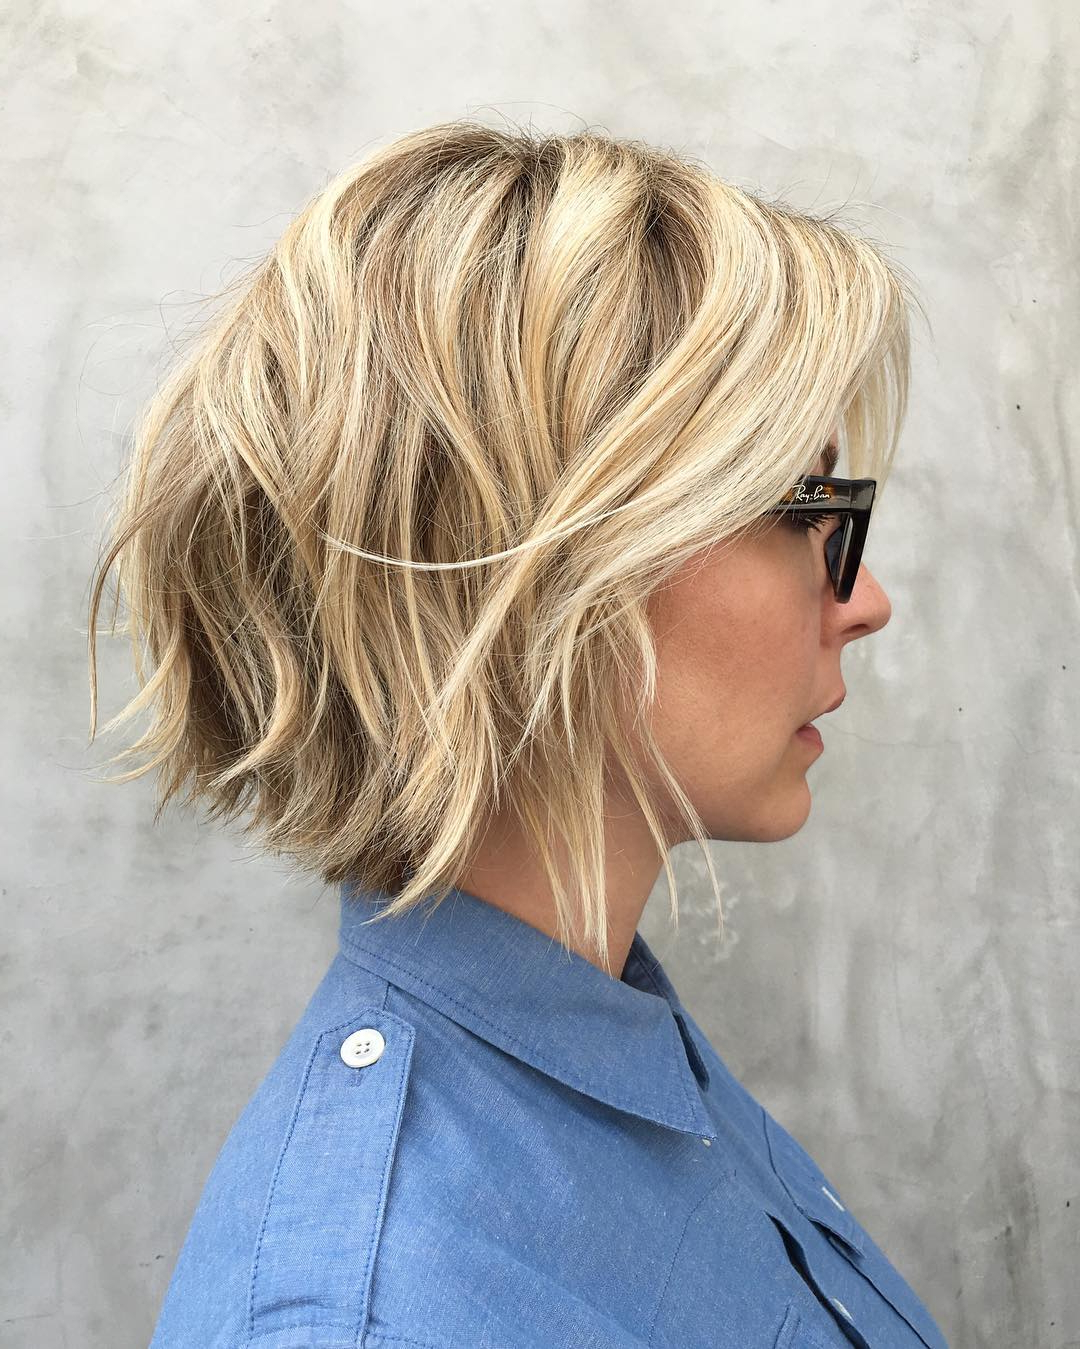 30 Trendiest Shaggy Bob Haircuts Of The Season Inside Most Current Long Brown Shag Hairstyles With Blonde Highlights (Gallery 11 of 20)